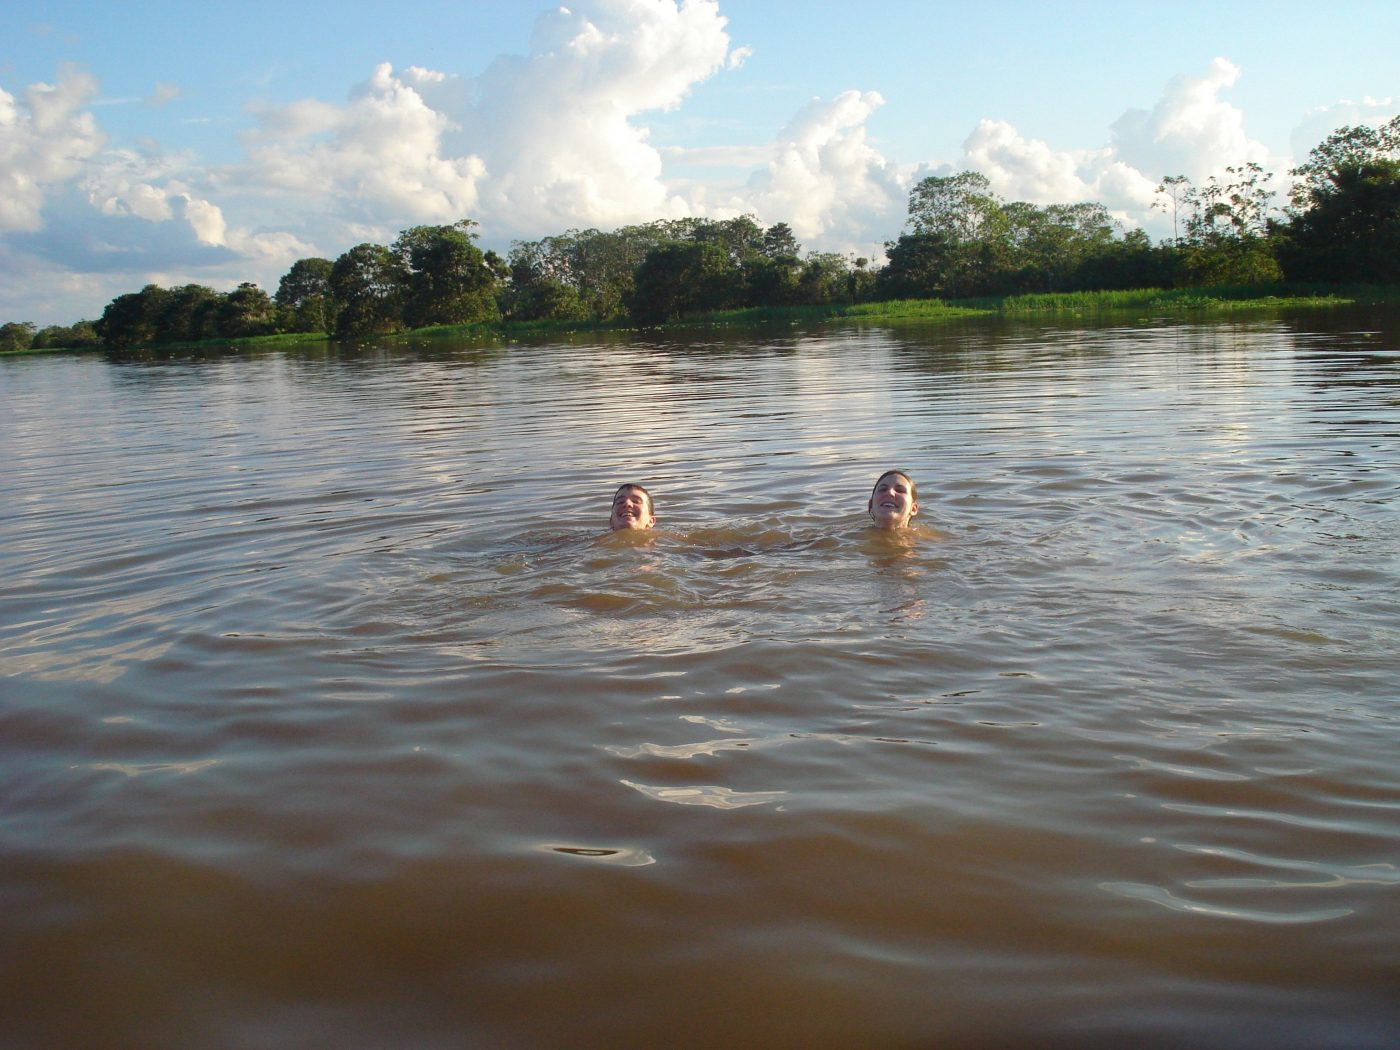 swiming in the peruvain amazon